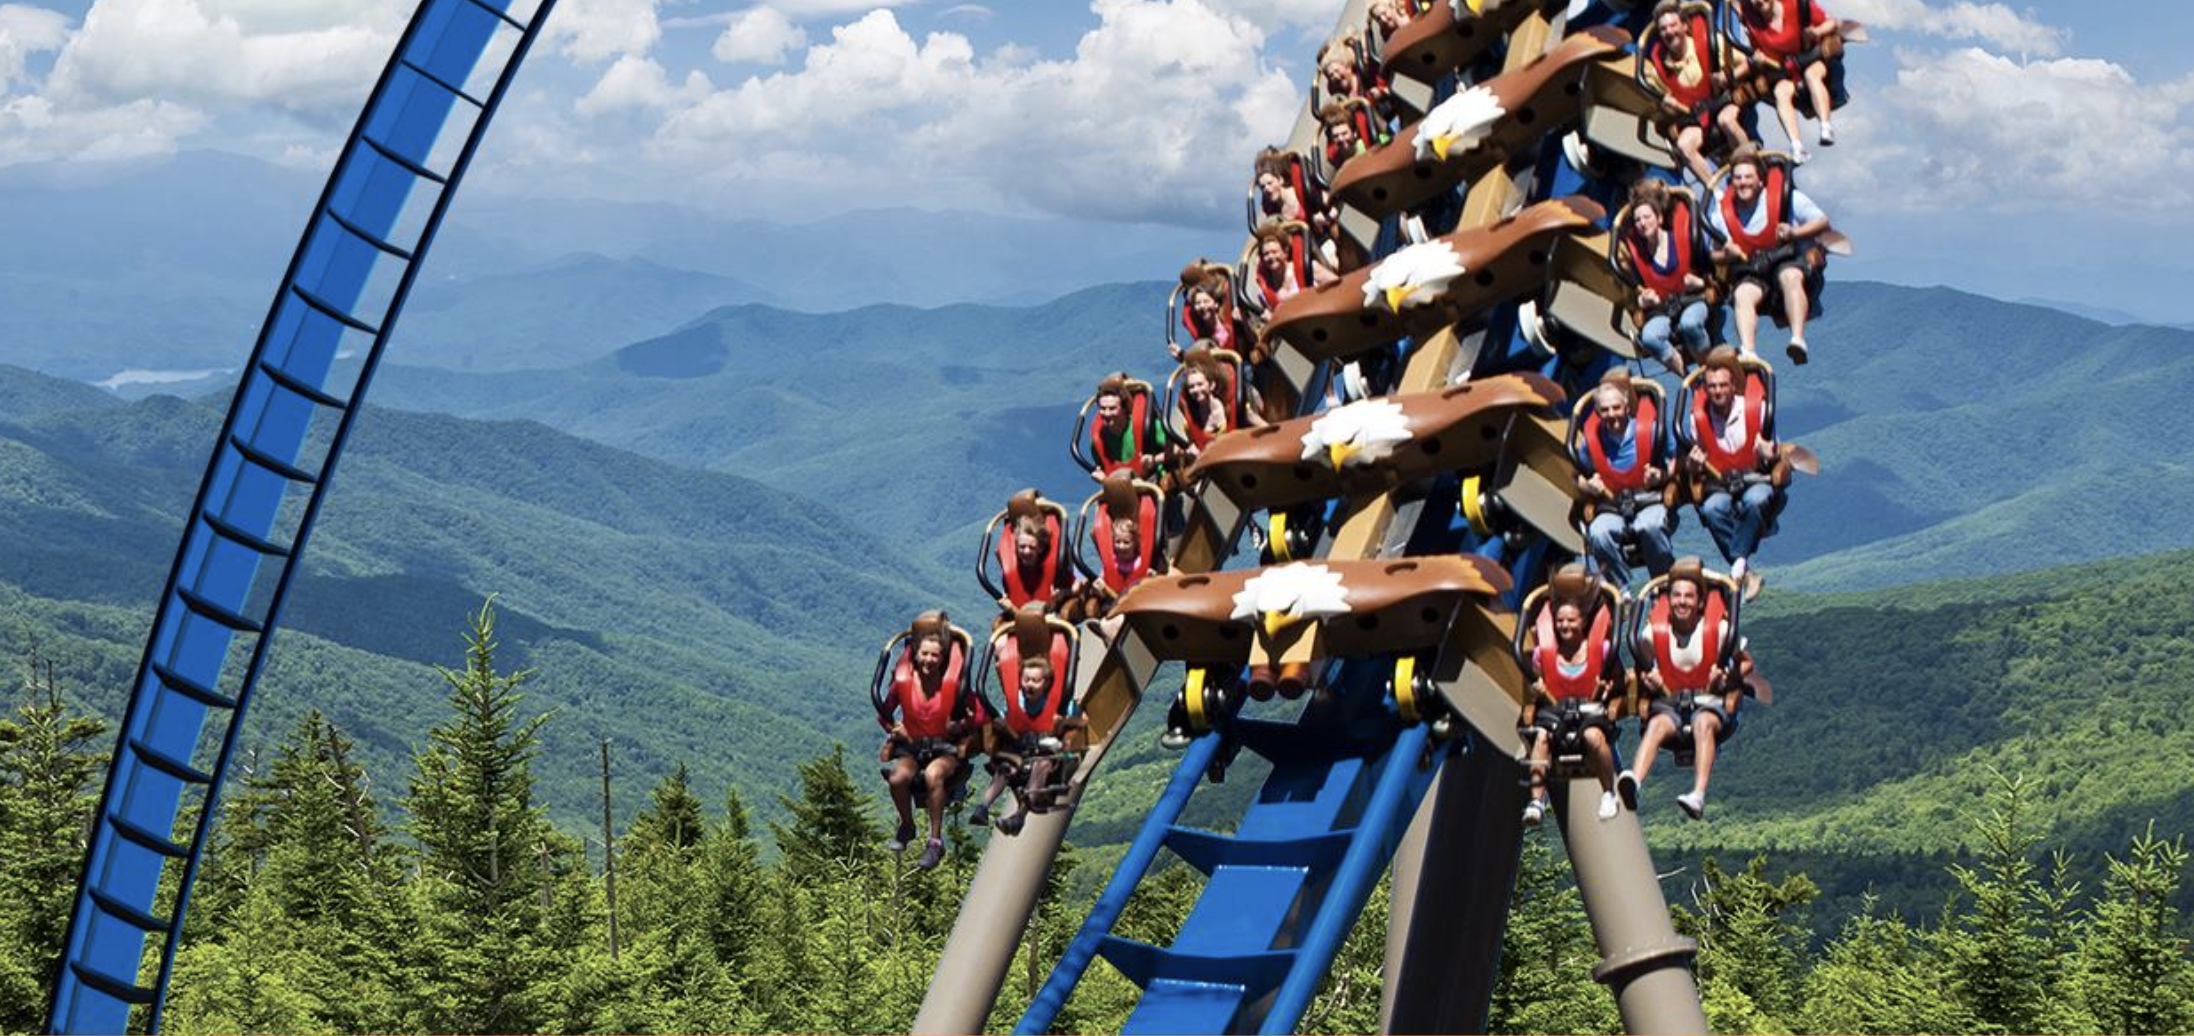 With 50 rides, the Dollywood Theme Park is packed full of family fun!